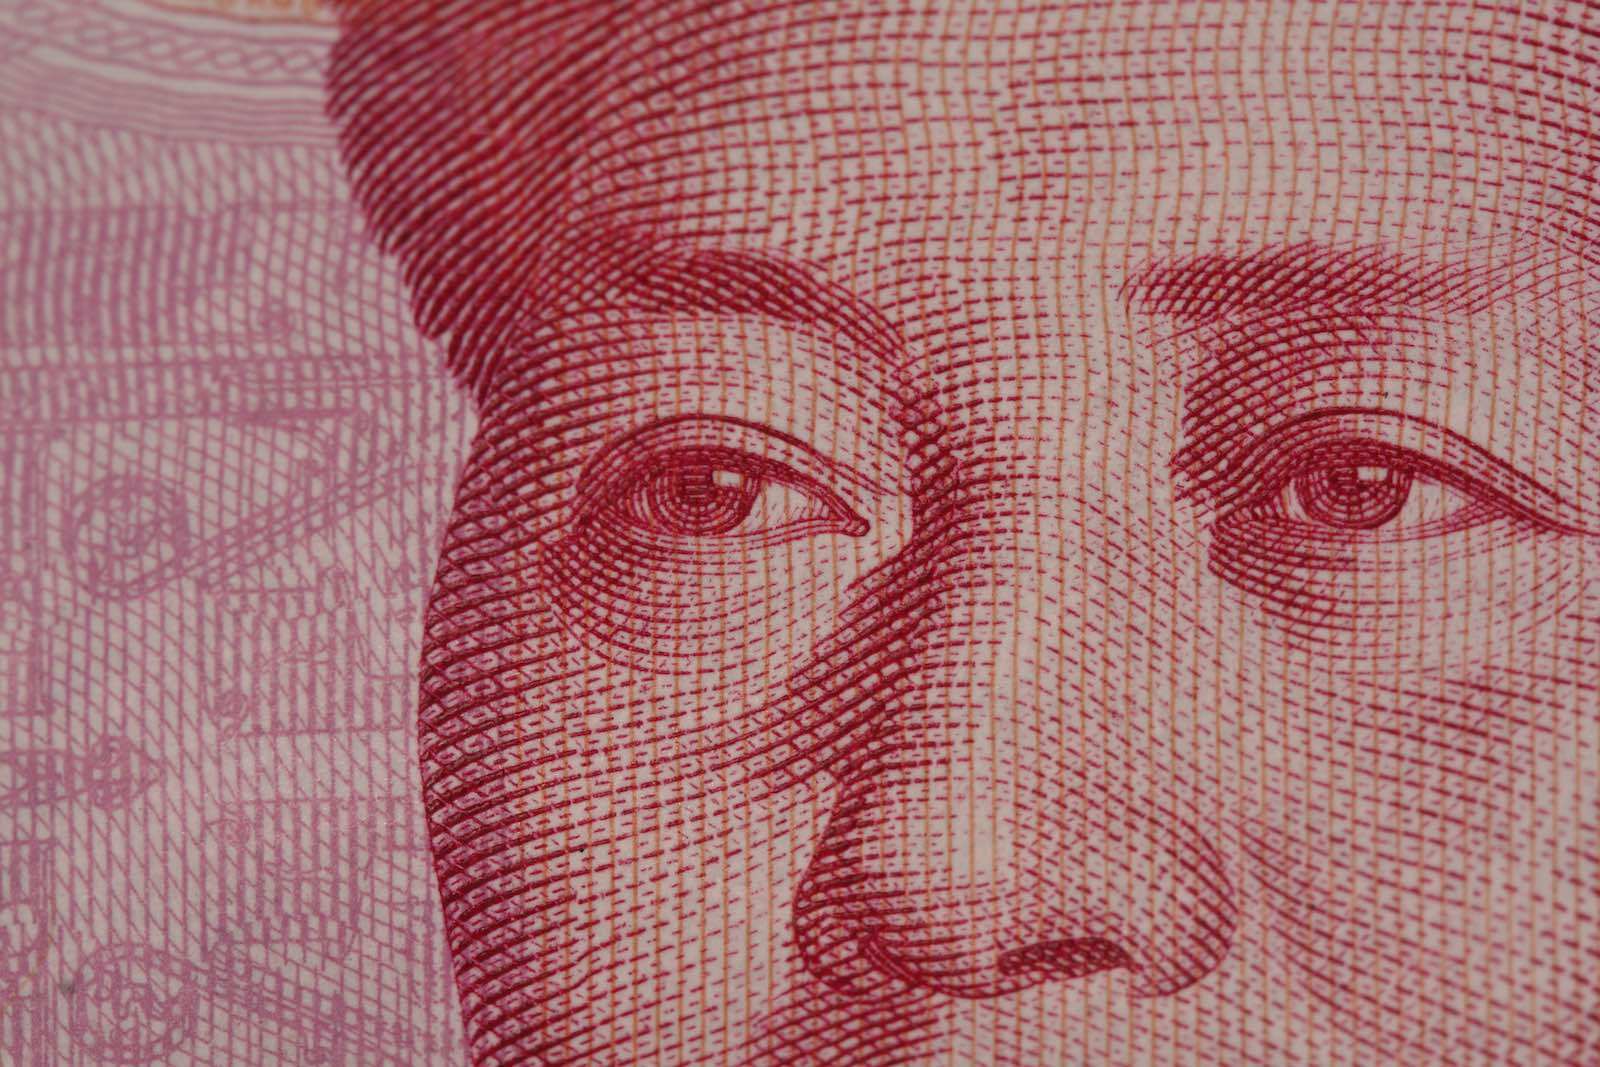 China was a currency manipulator in the first decade of this century, running a huge current account surplus to build up foreign exchange reserves (Photo: David Dennis/Flickr)